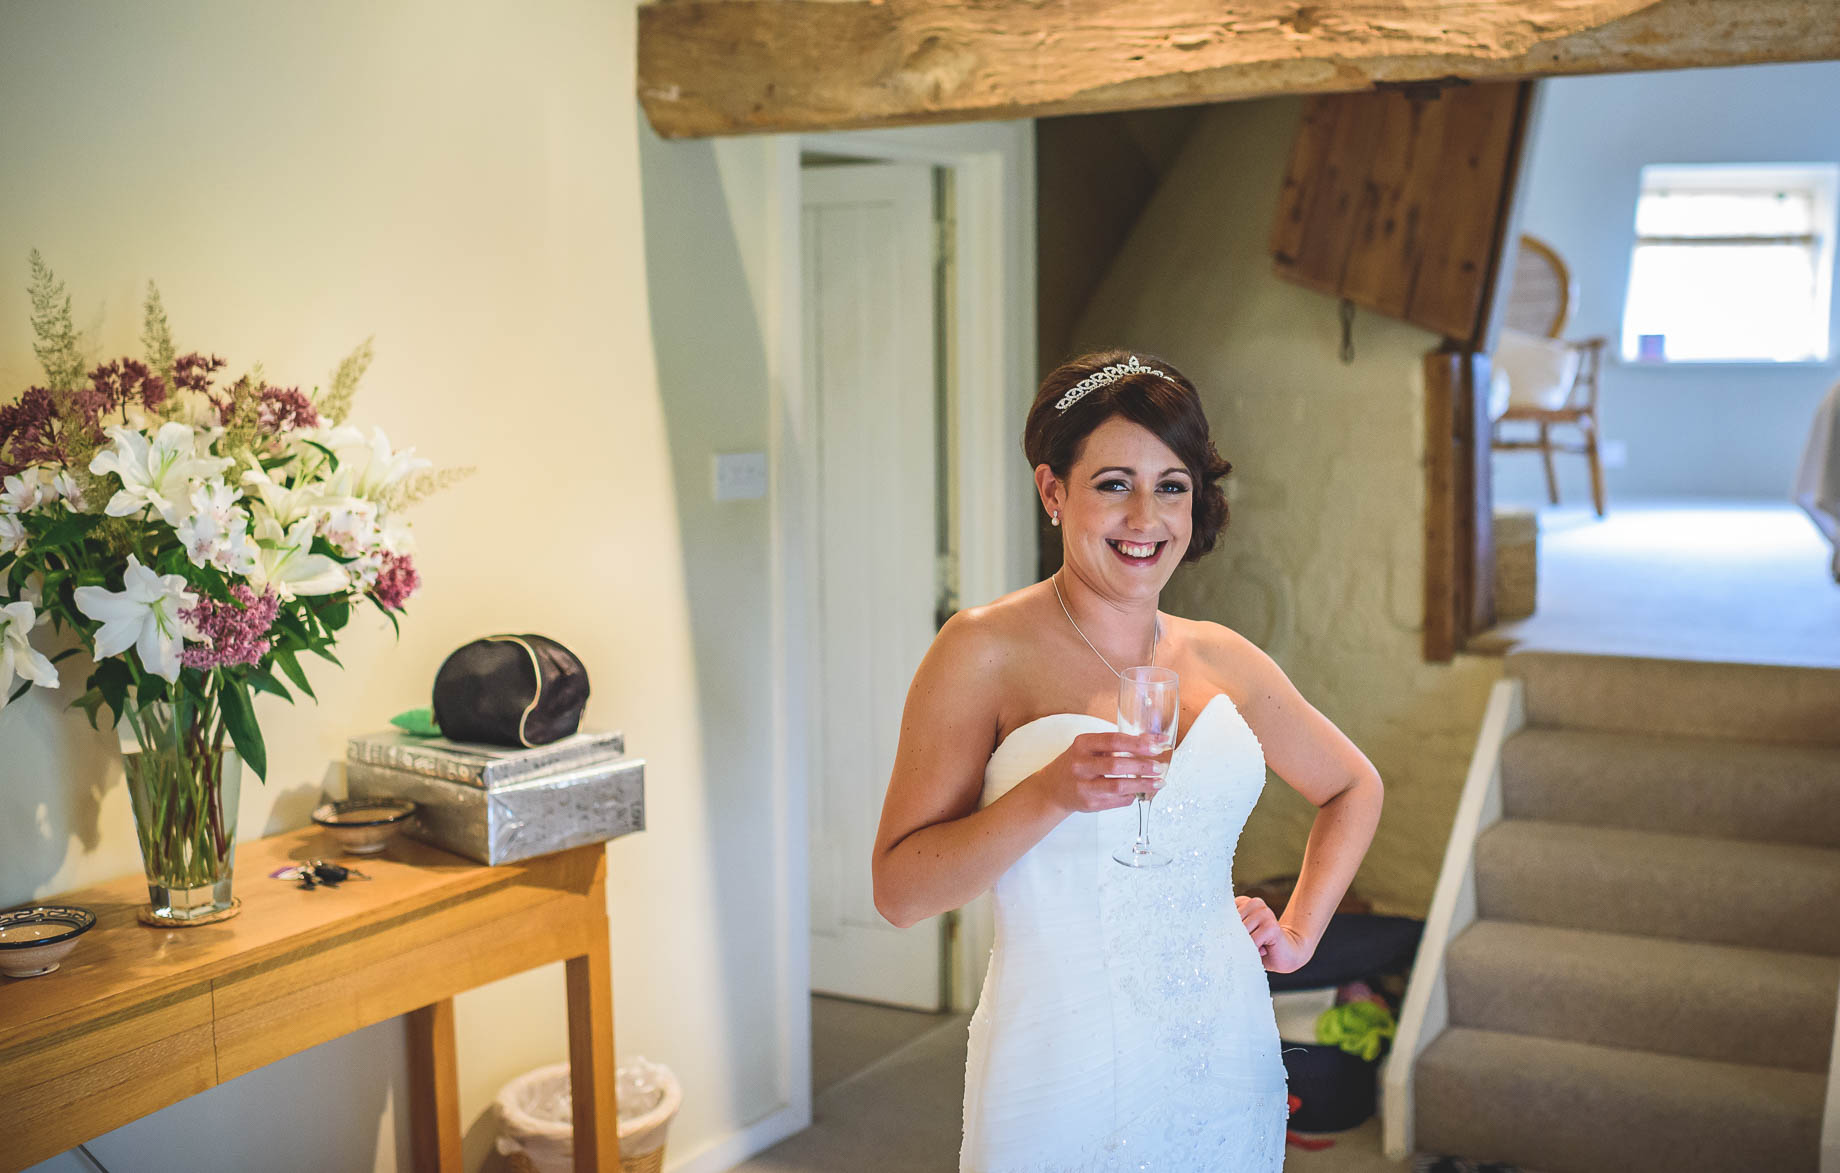 Bury Court Barn wedding photography - Guy Collier Photography - Karen and John (37 of 166)